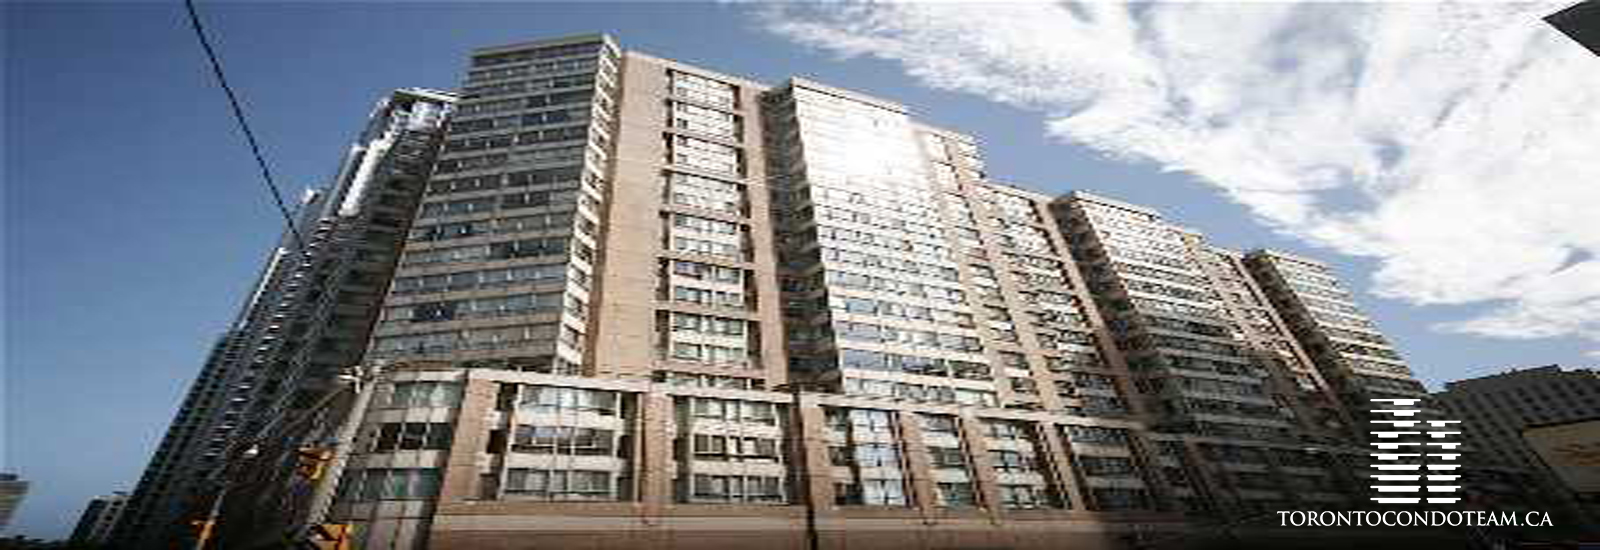 44 Gerrard Street Condos For Sale